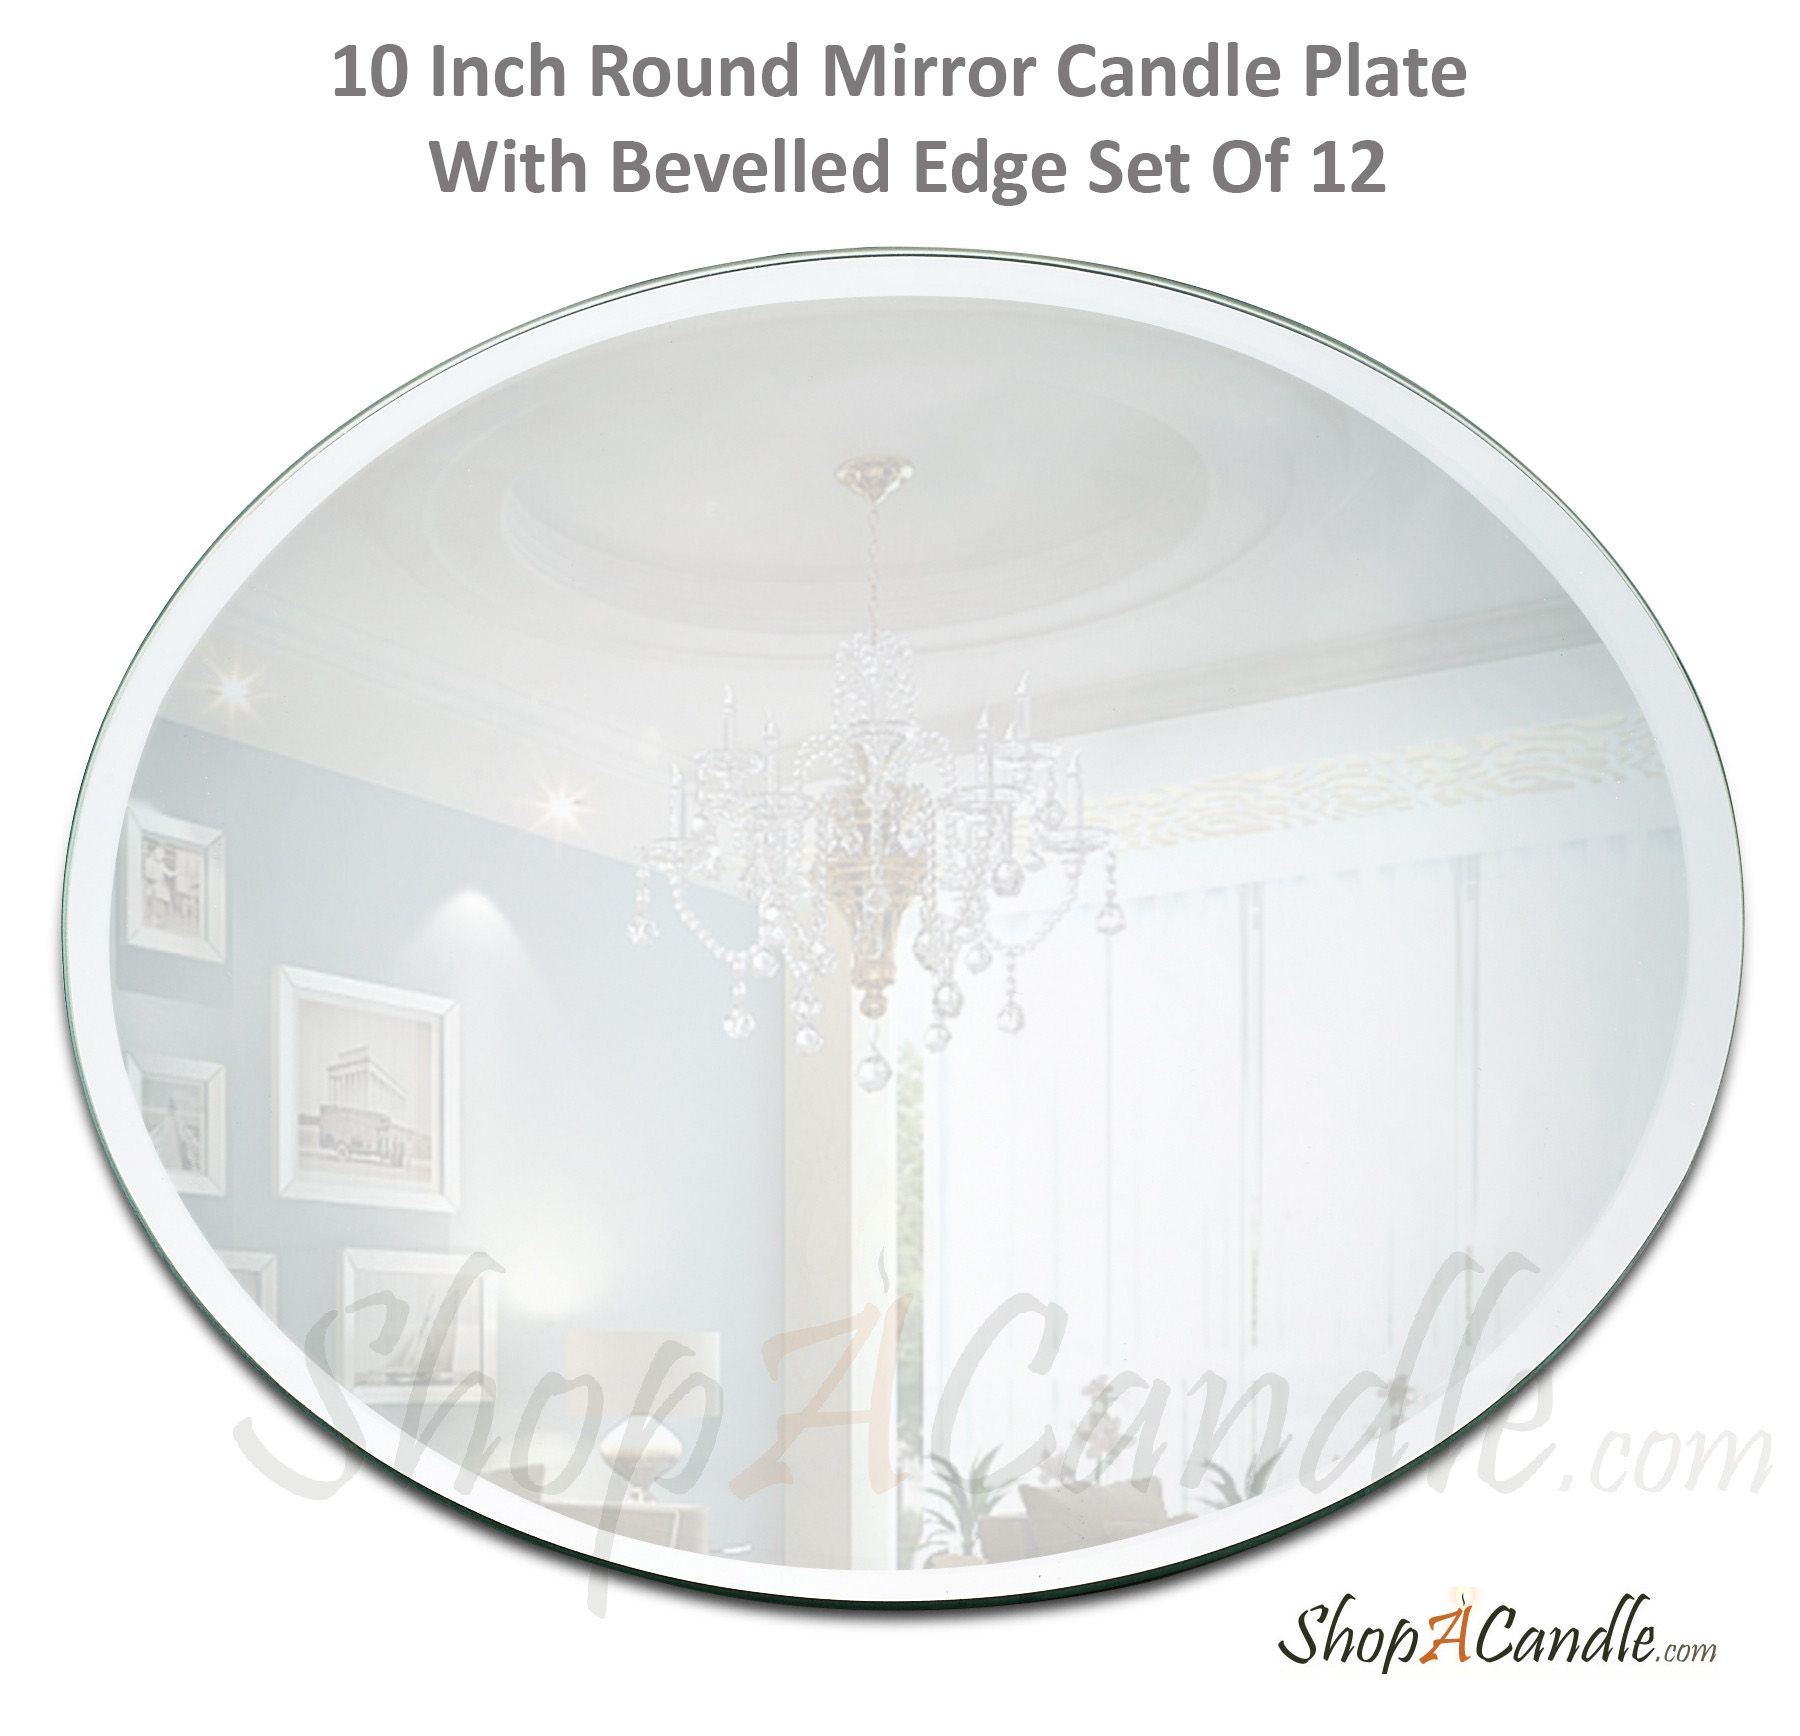 Mirror Candle Plate We Sell Premium Quality Round Mirror Centerpieces For The Table 10 Inch Mirror Candle Plate With Mirror Candle Plate Candle Plate Mirror